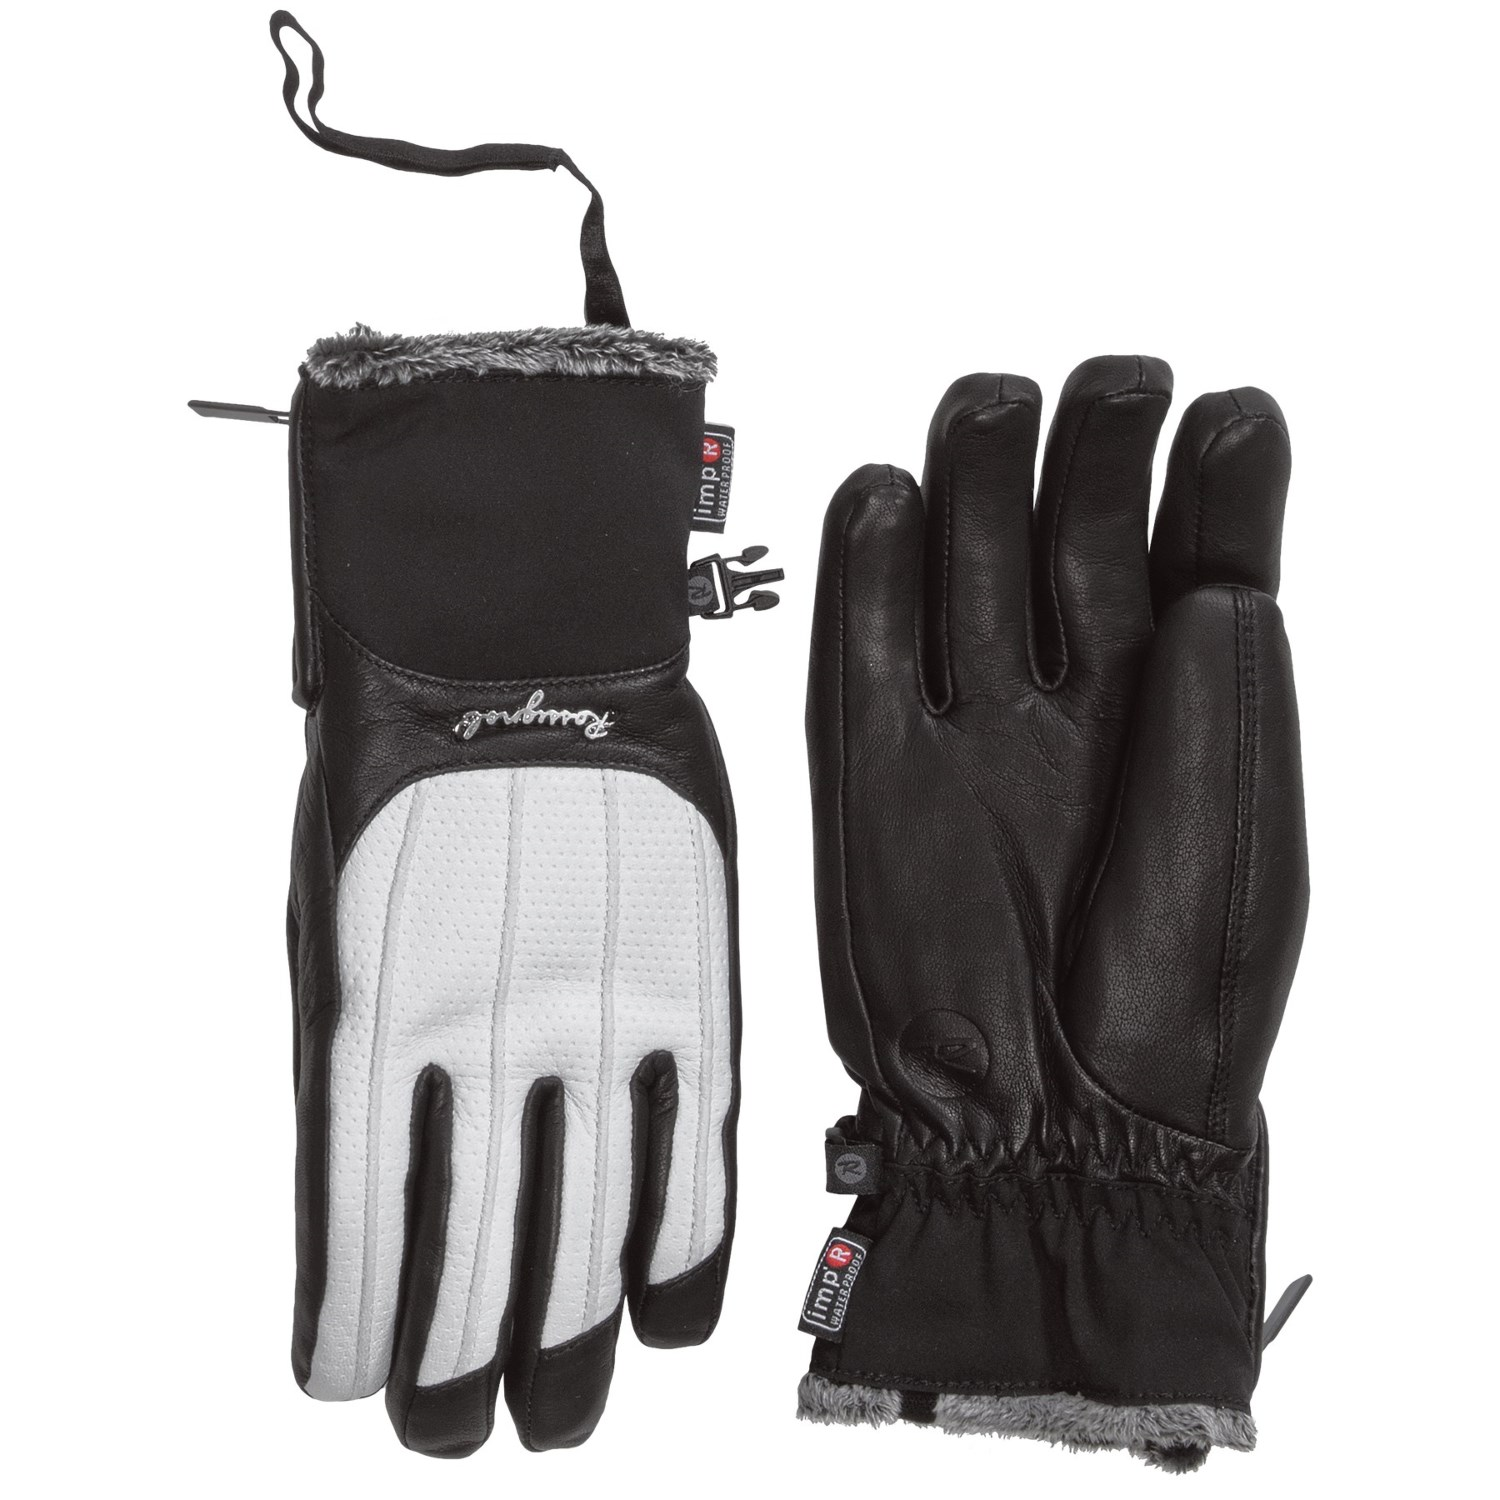 Womens leather gloves reviews - Good Glove